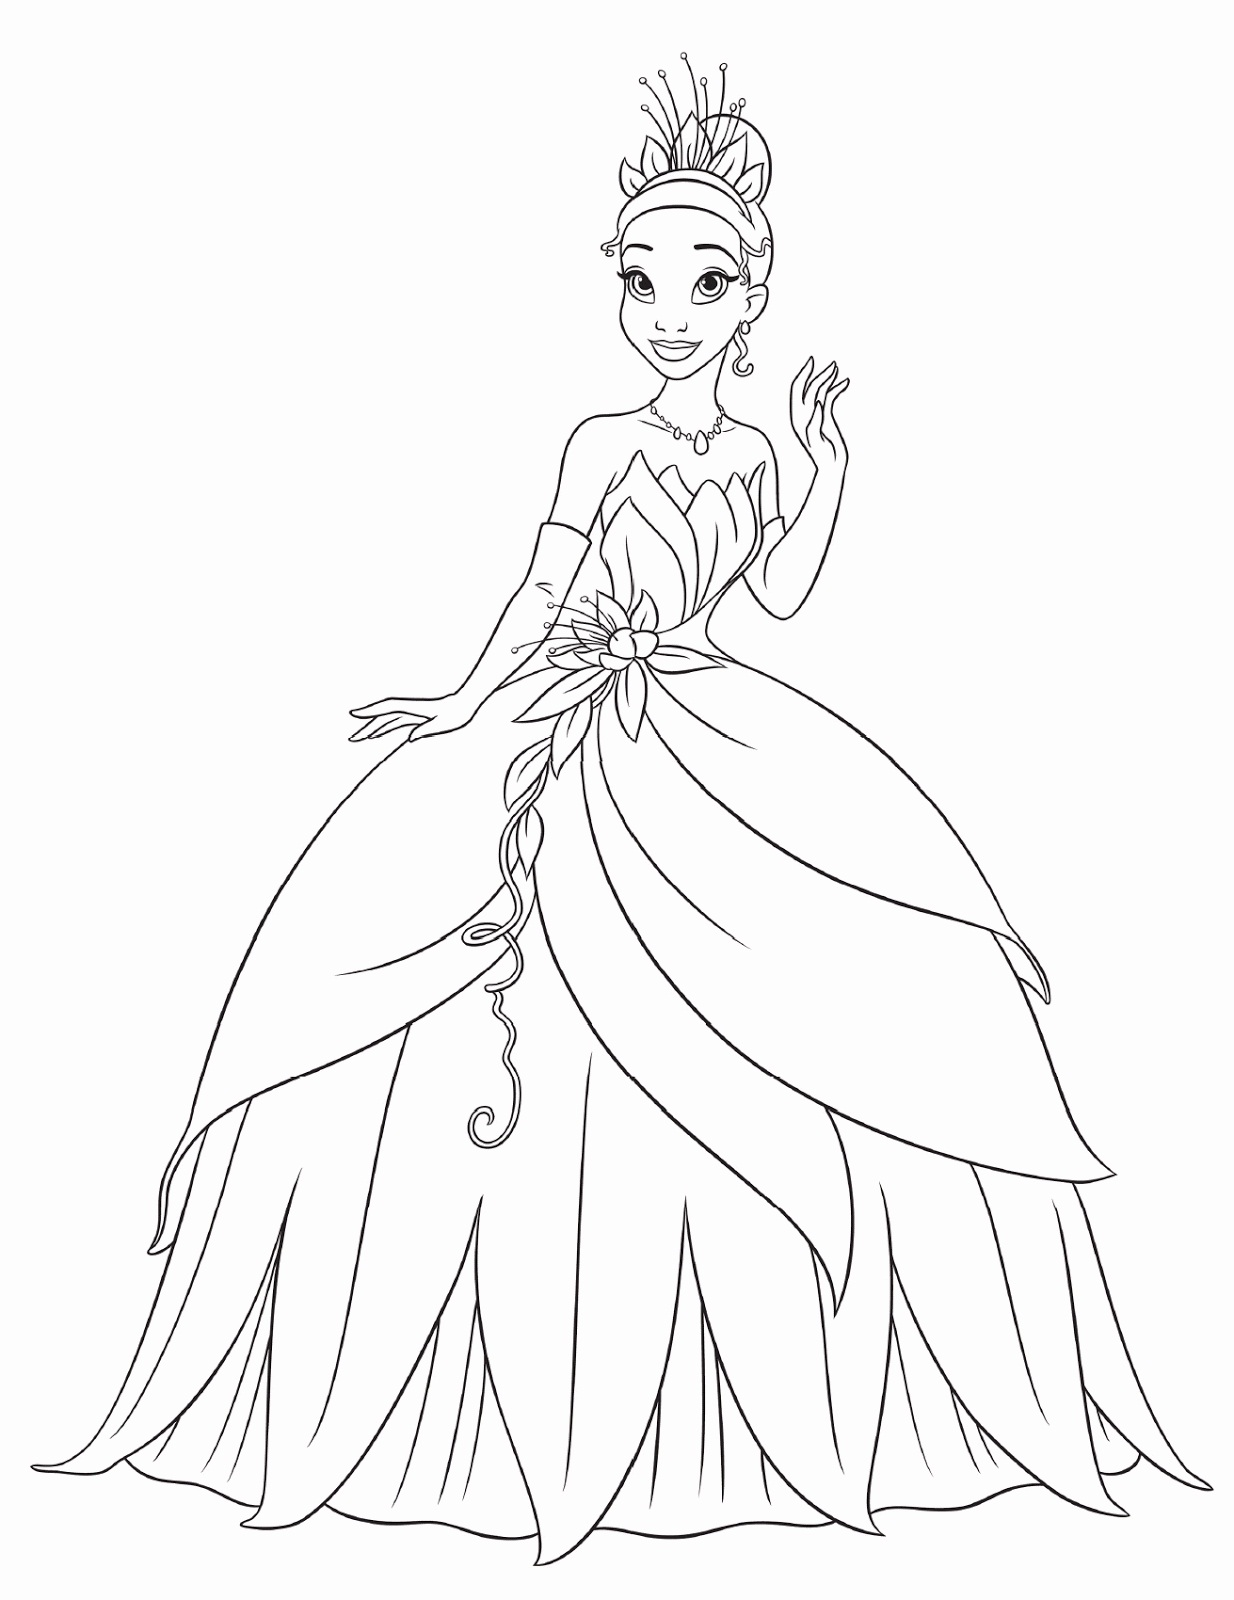 Free Printable Princess Tiana Coloring Pages For Kids Princess Images Free Coloring Sheets